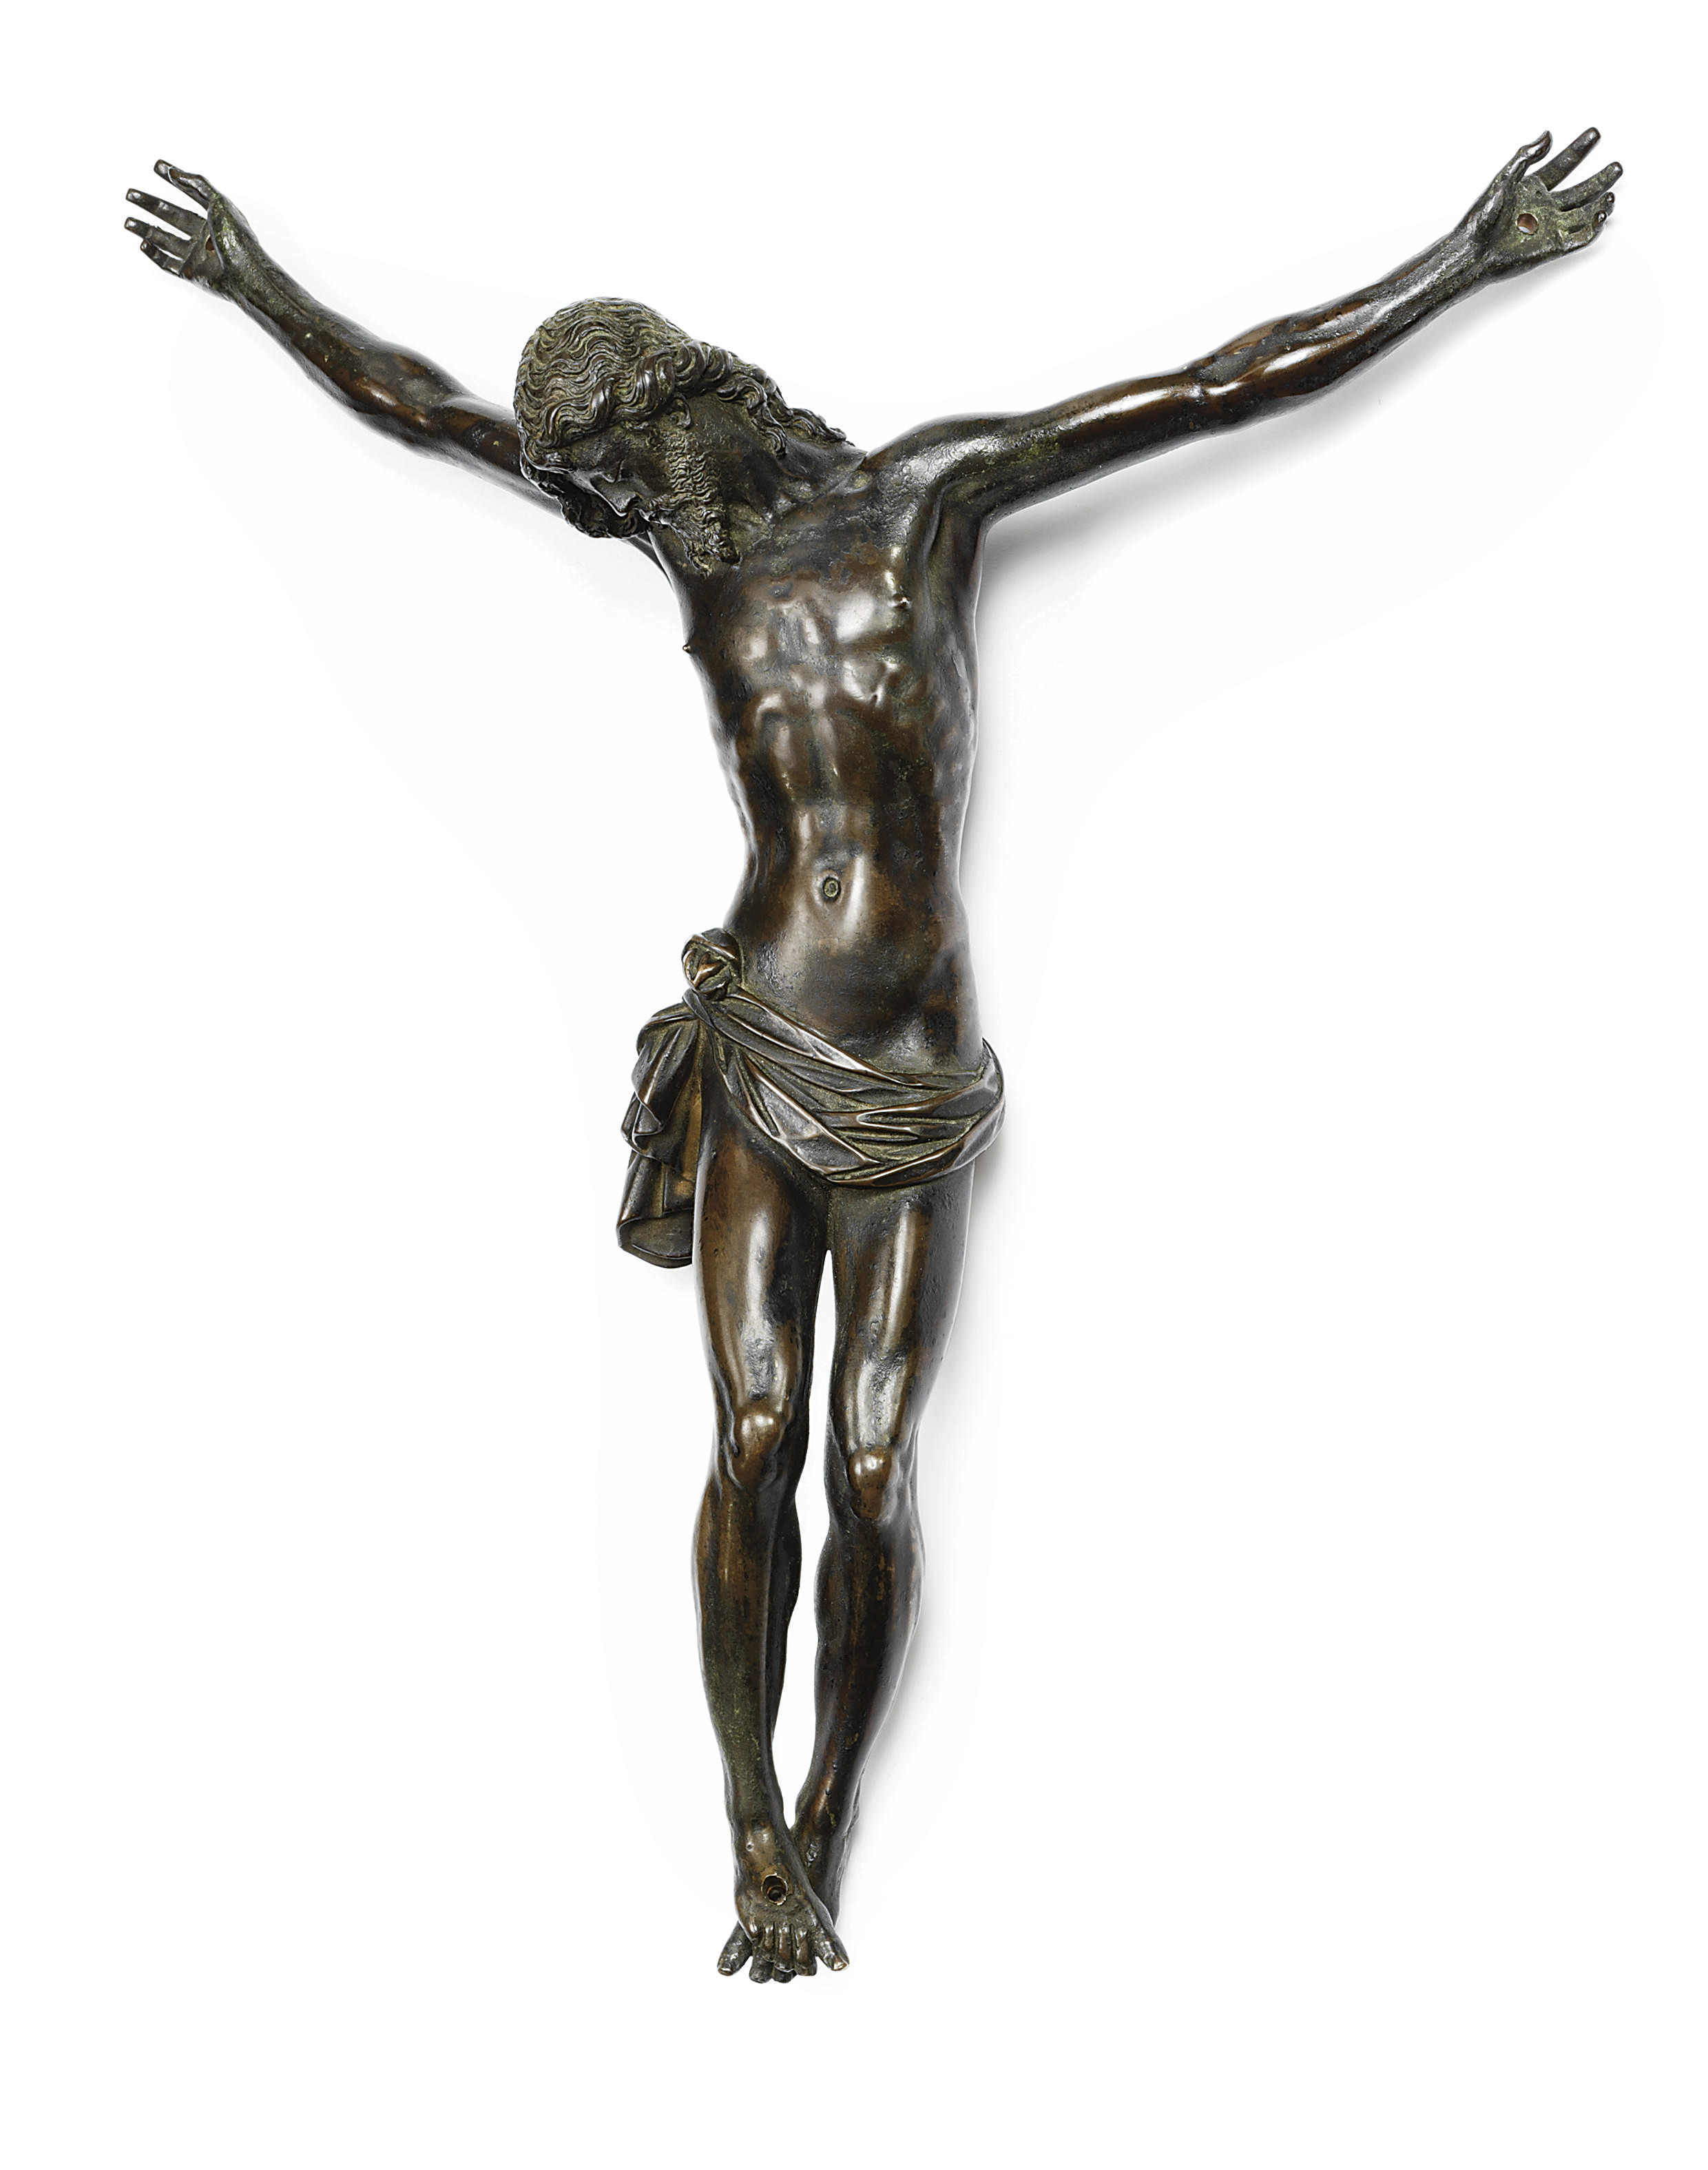 A BRONZE FIGURE OF THE CRUCIFIED CHRIST